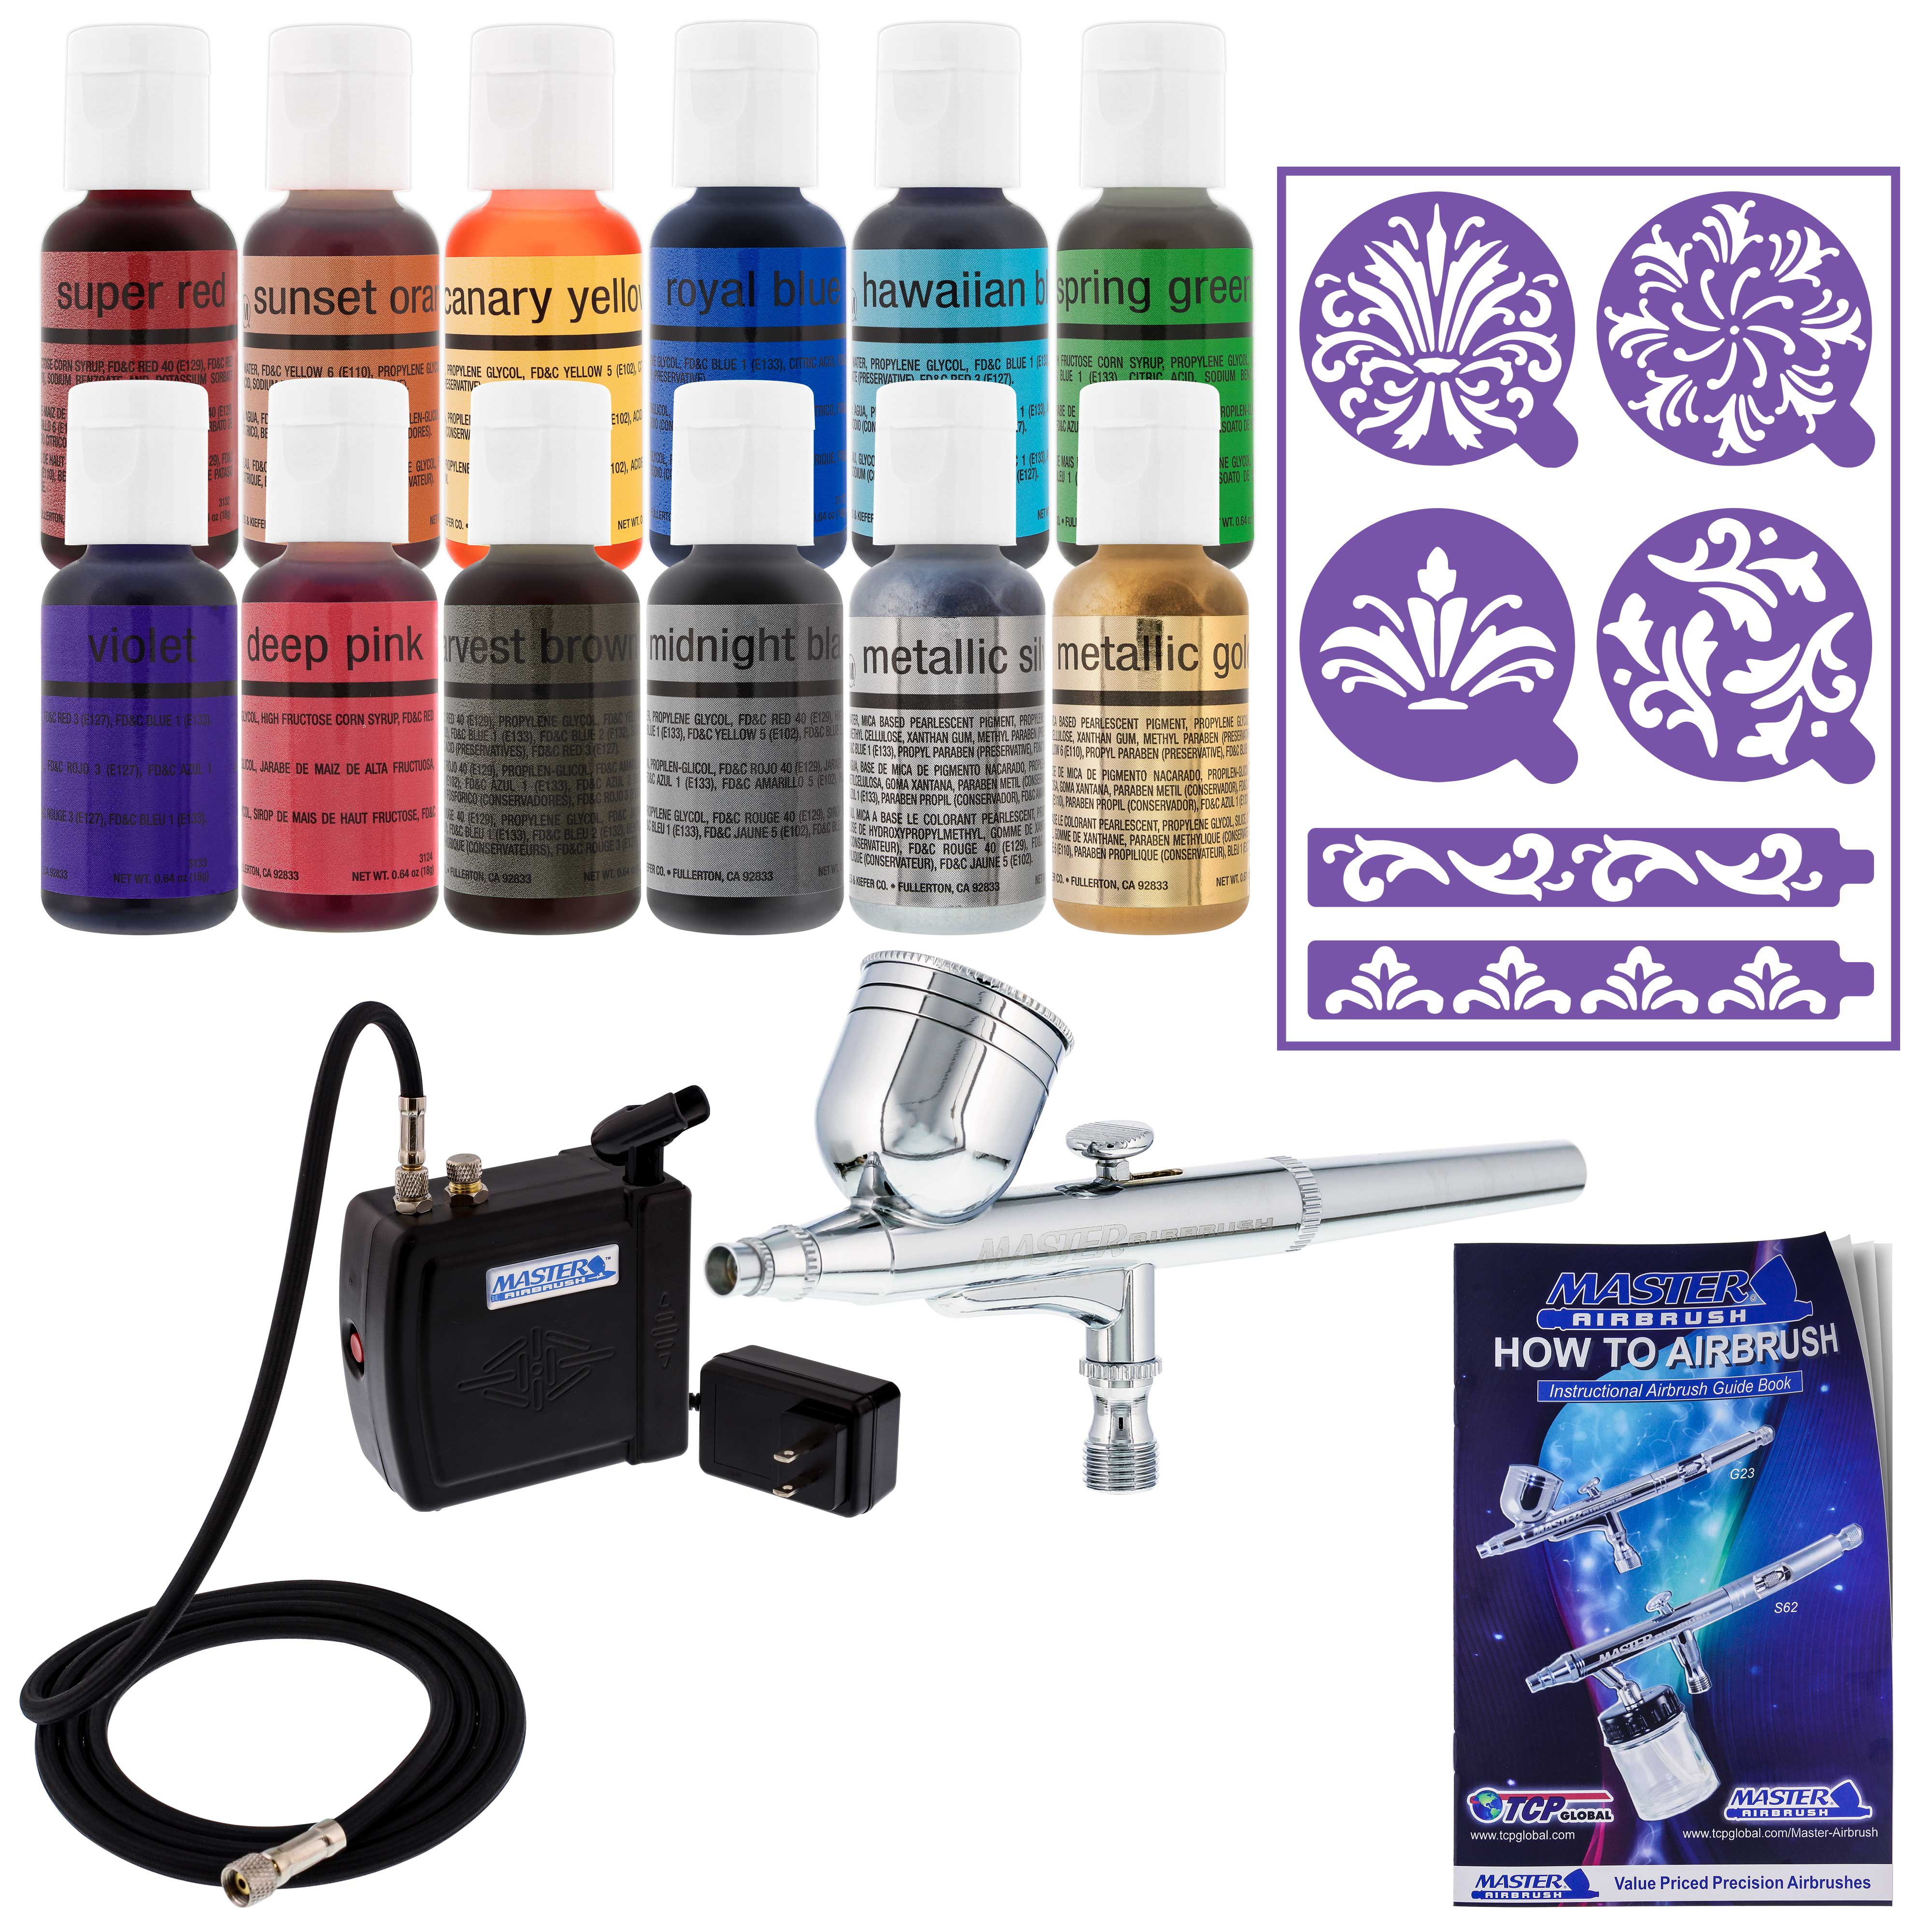 Details about Master Airbrush Cake Decorating Set 12 Chefmaster Colors  Compressor and Stencils